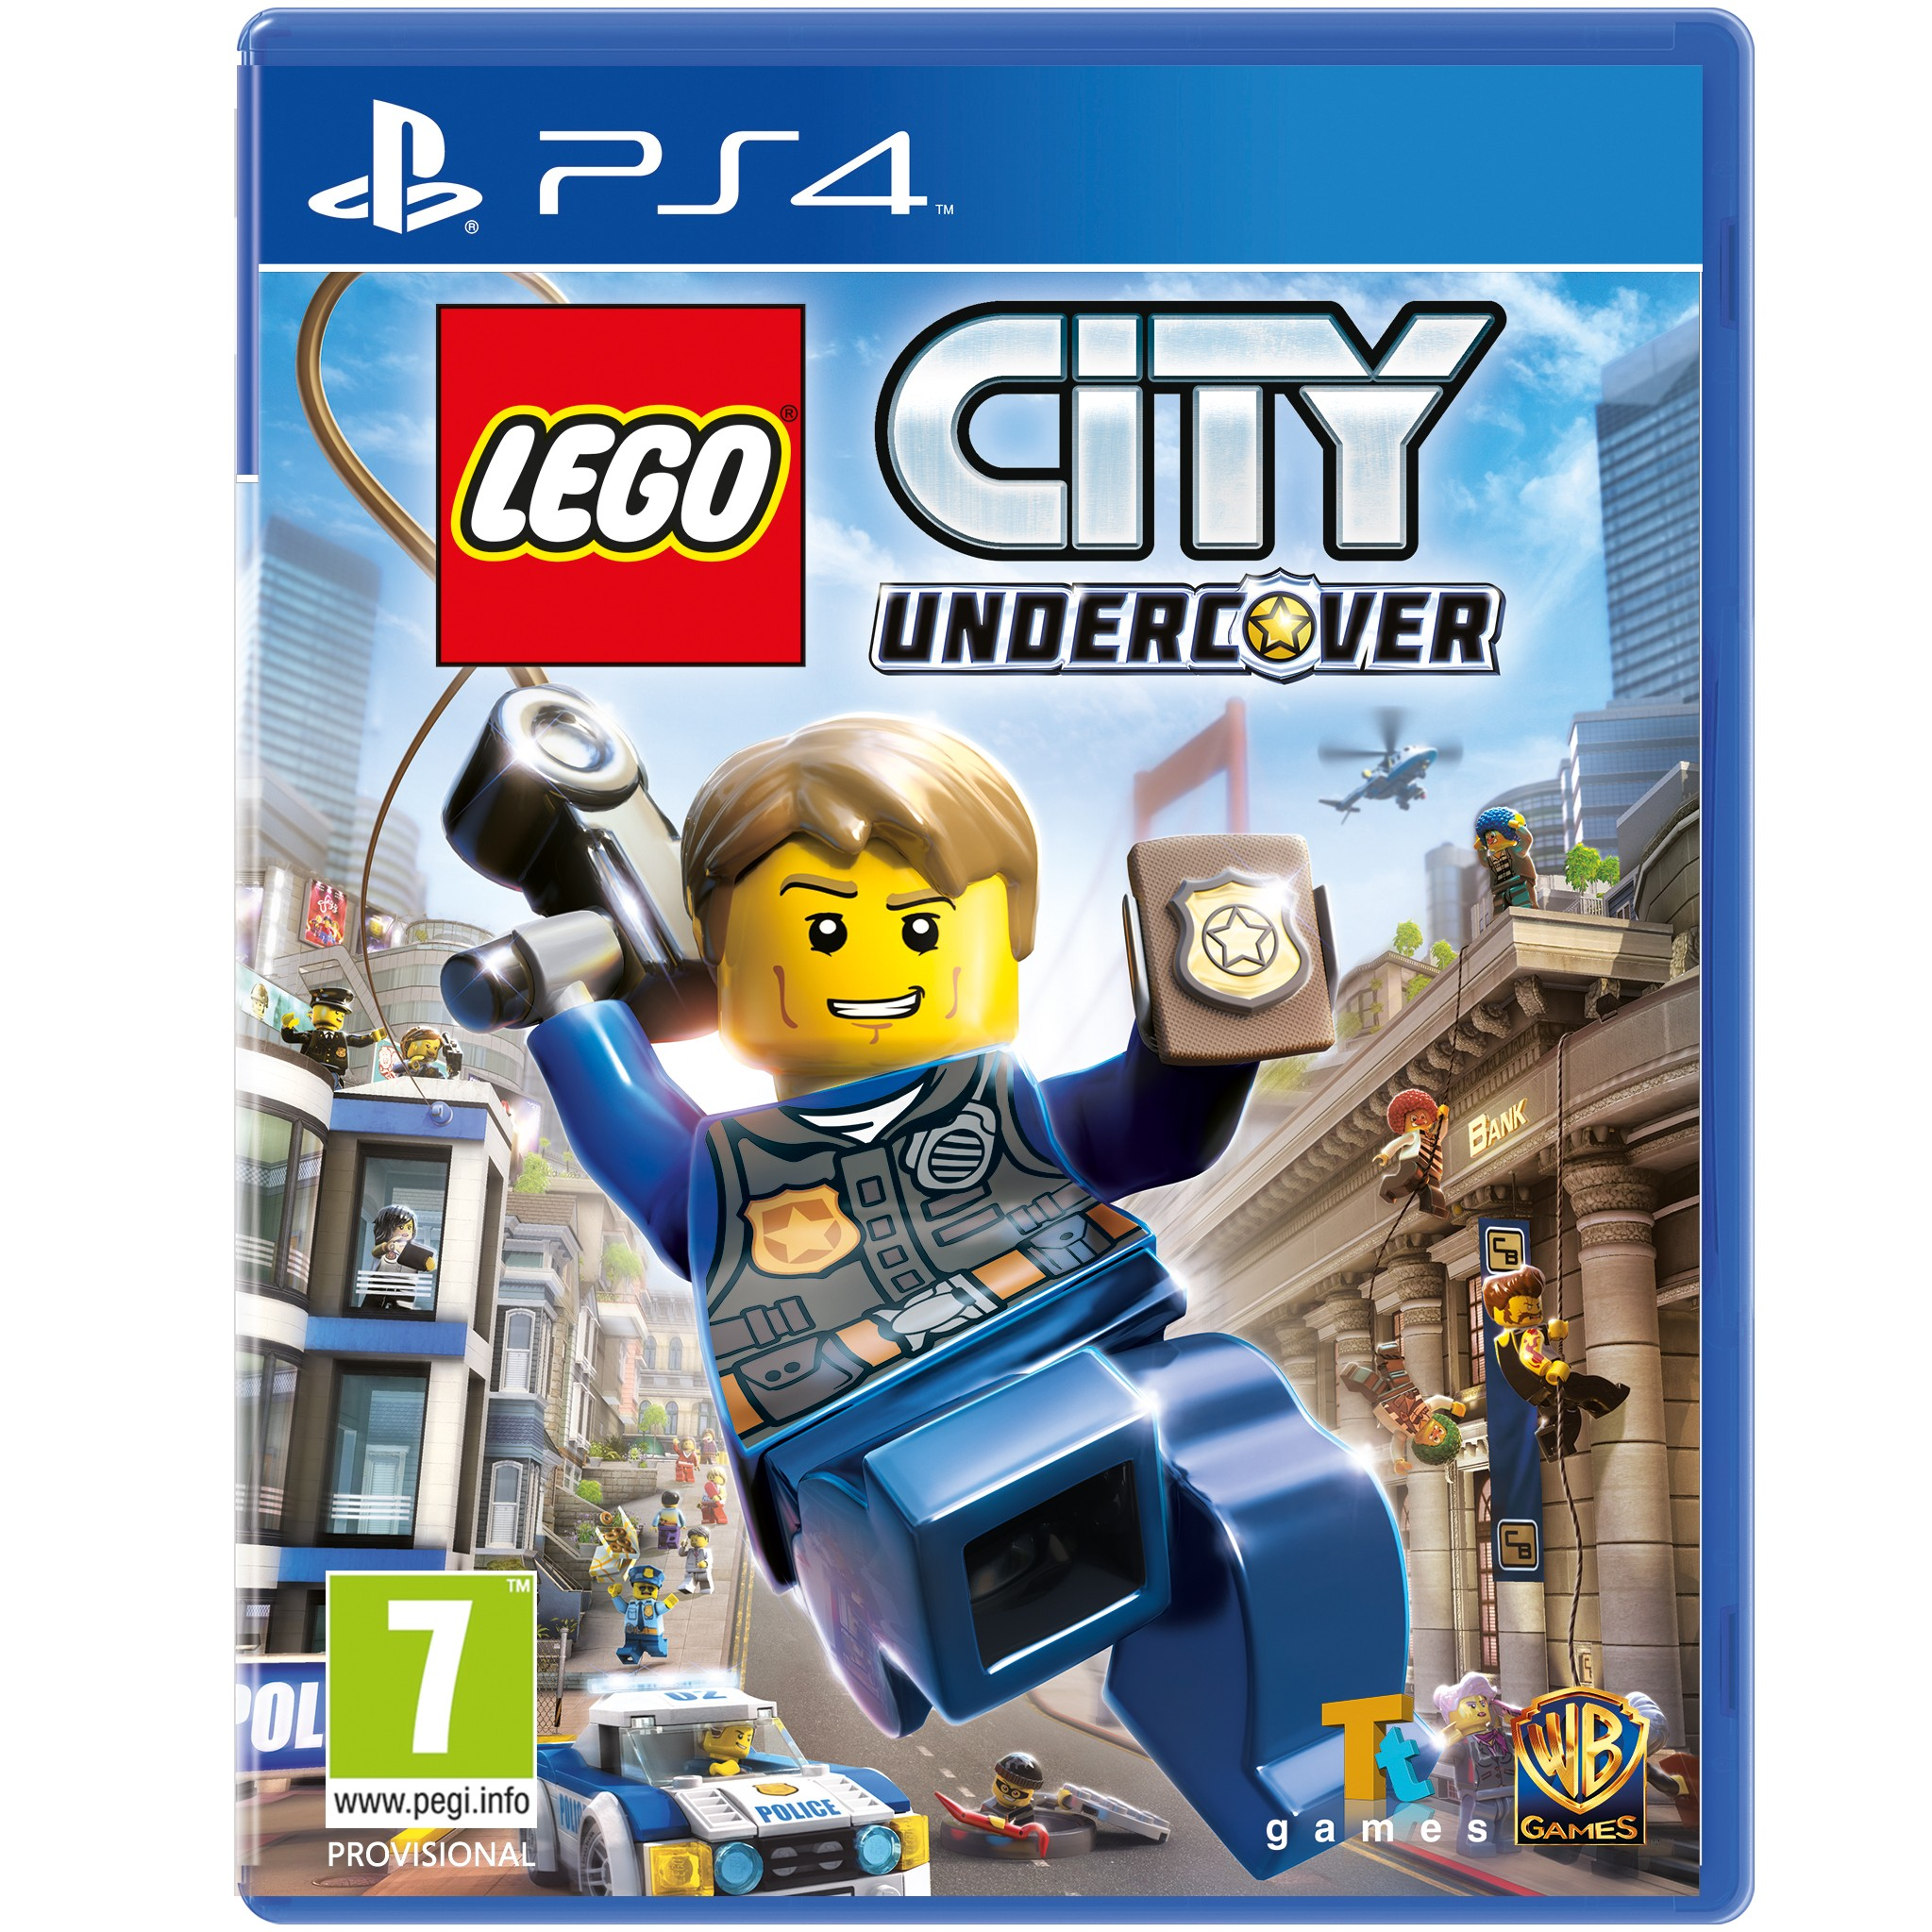 PS4LEGOCUND : LEGO City Undercover (PS4)